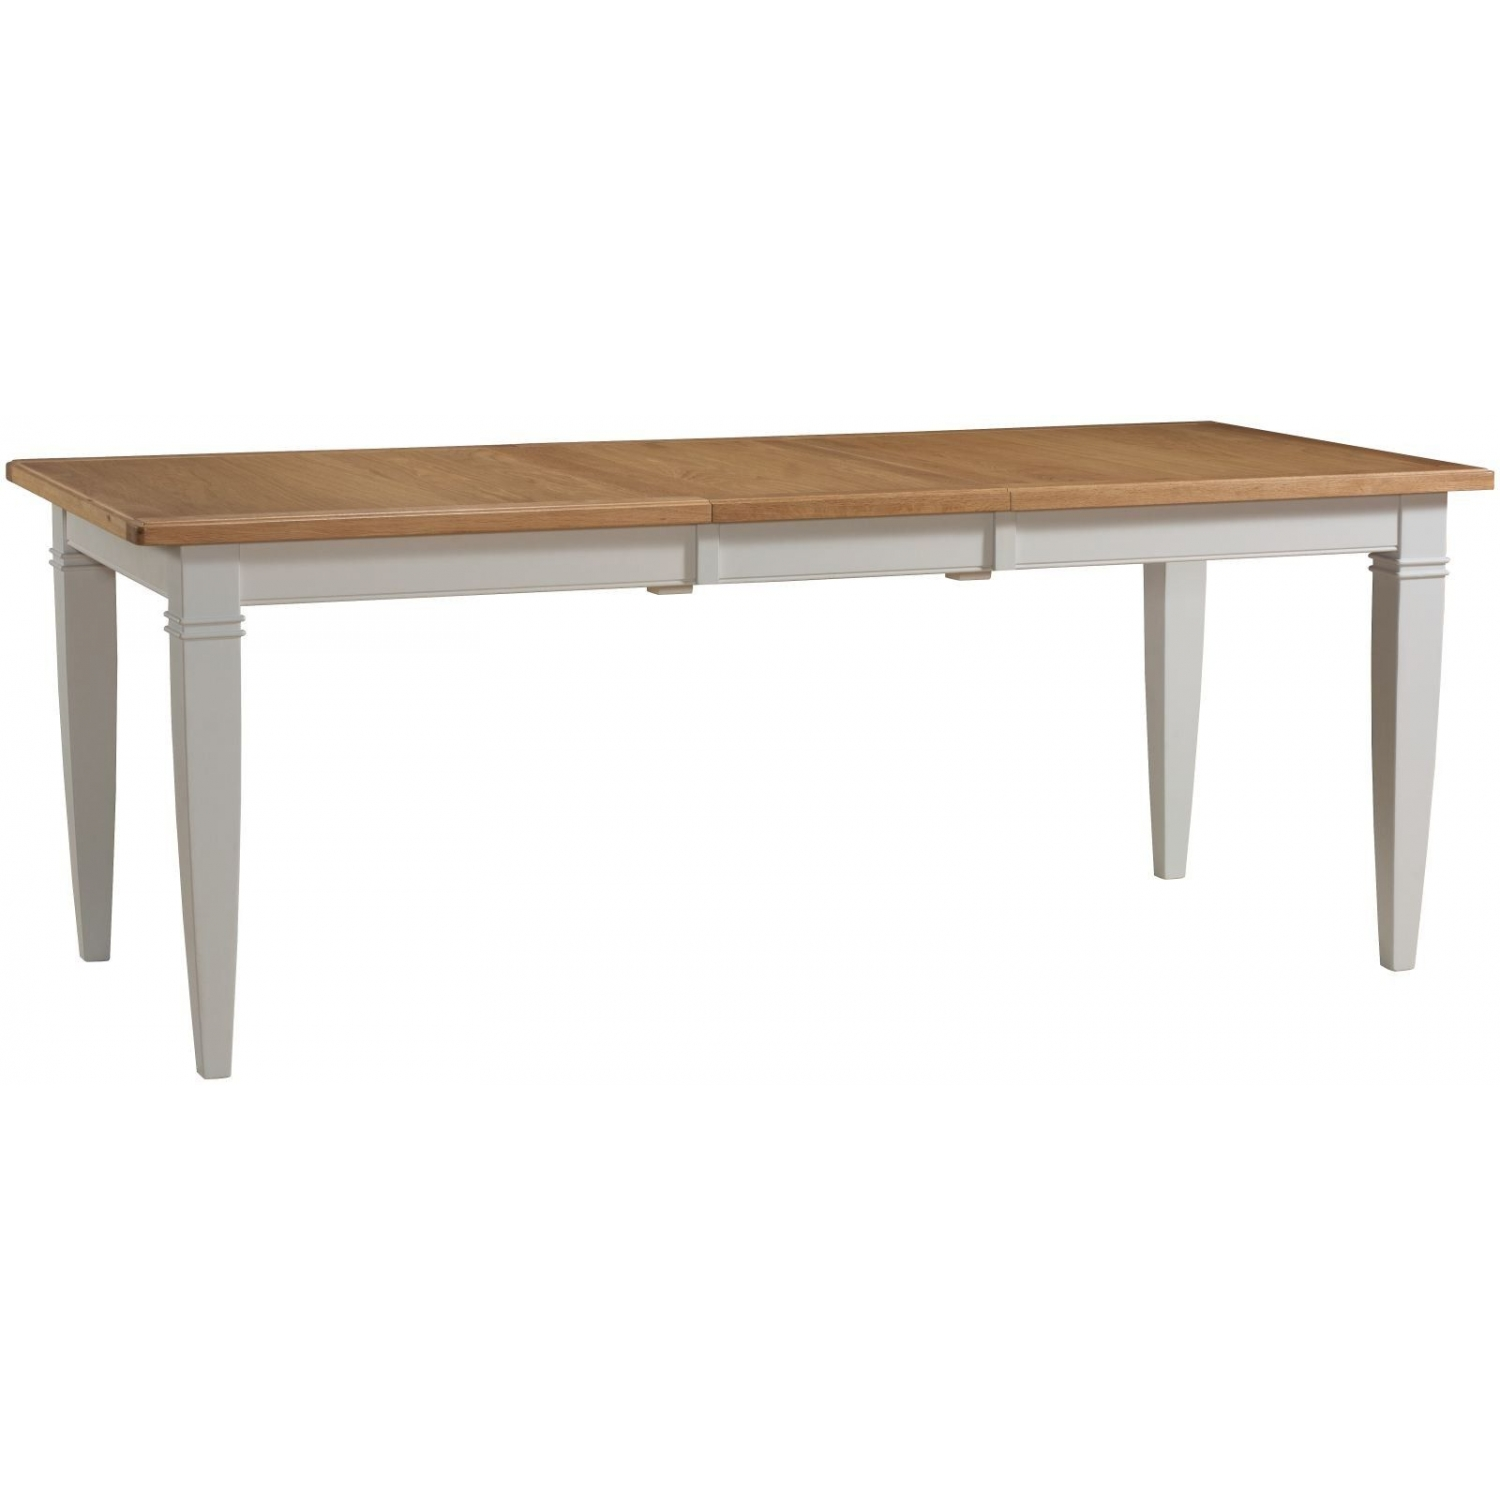 Dillon Oak Grey Painted Furniture Large Extending Dining Table